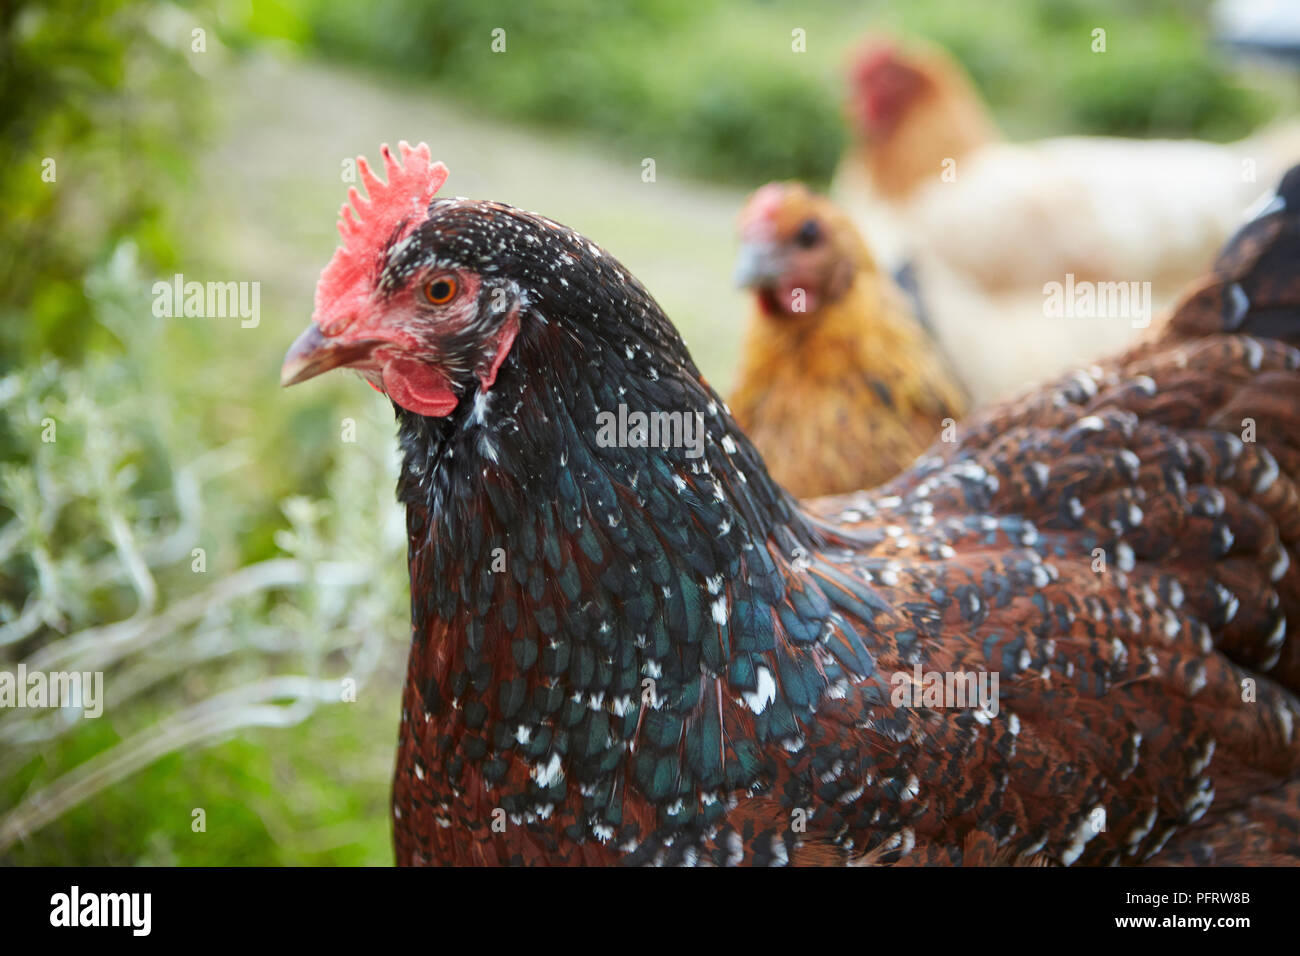 Chickens on allotment - Stock Image